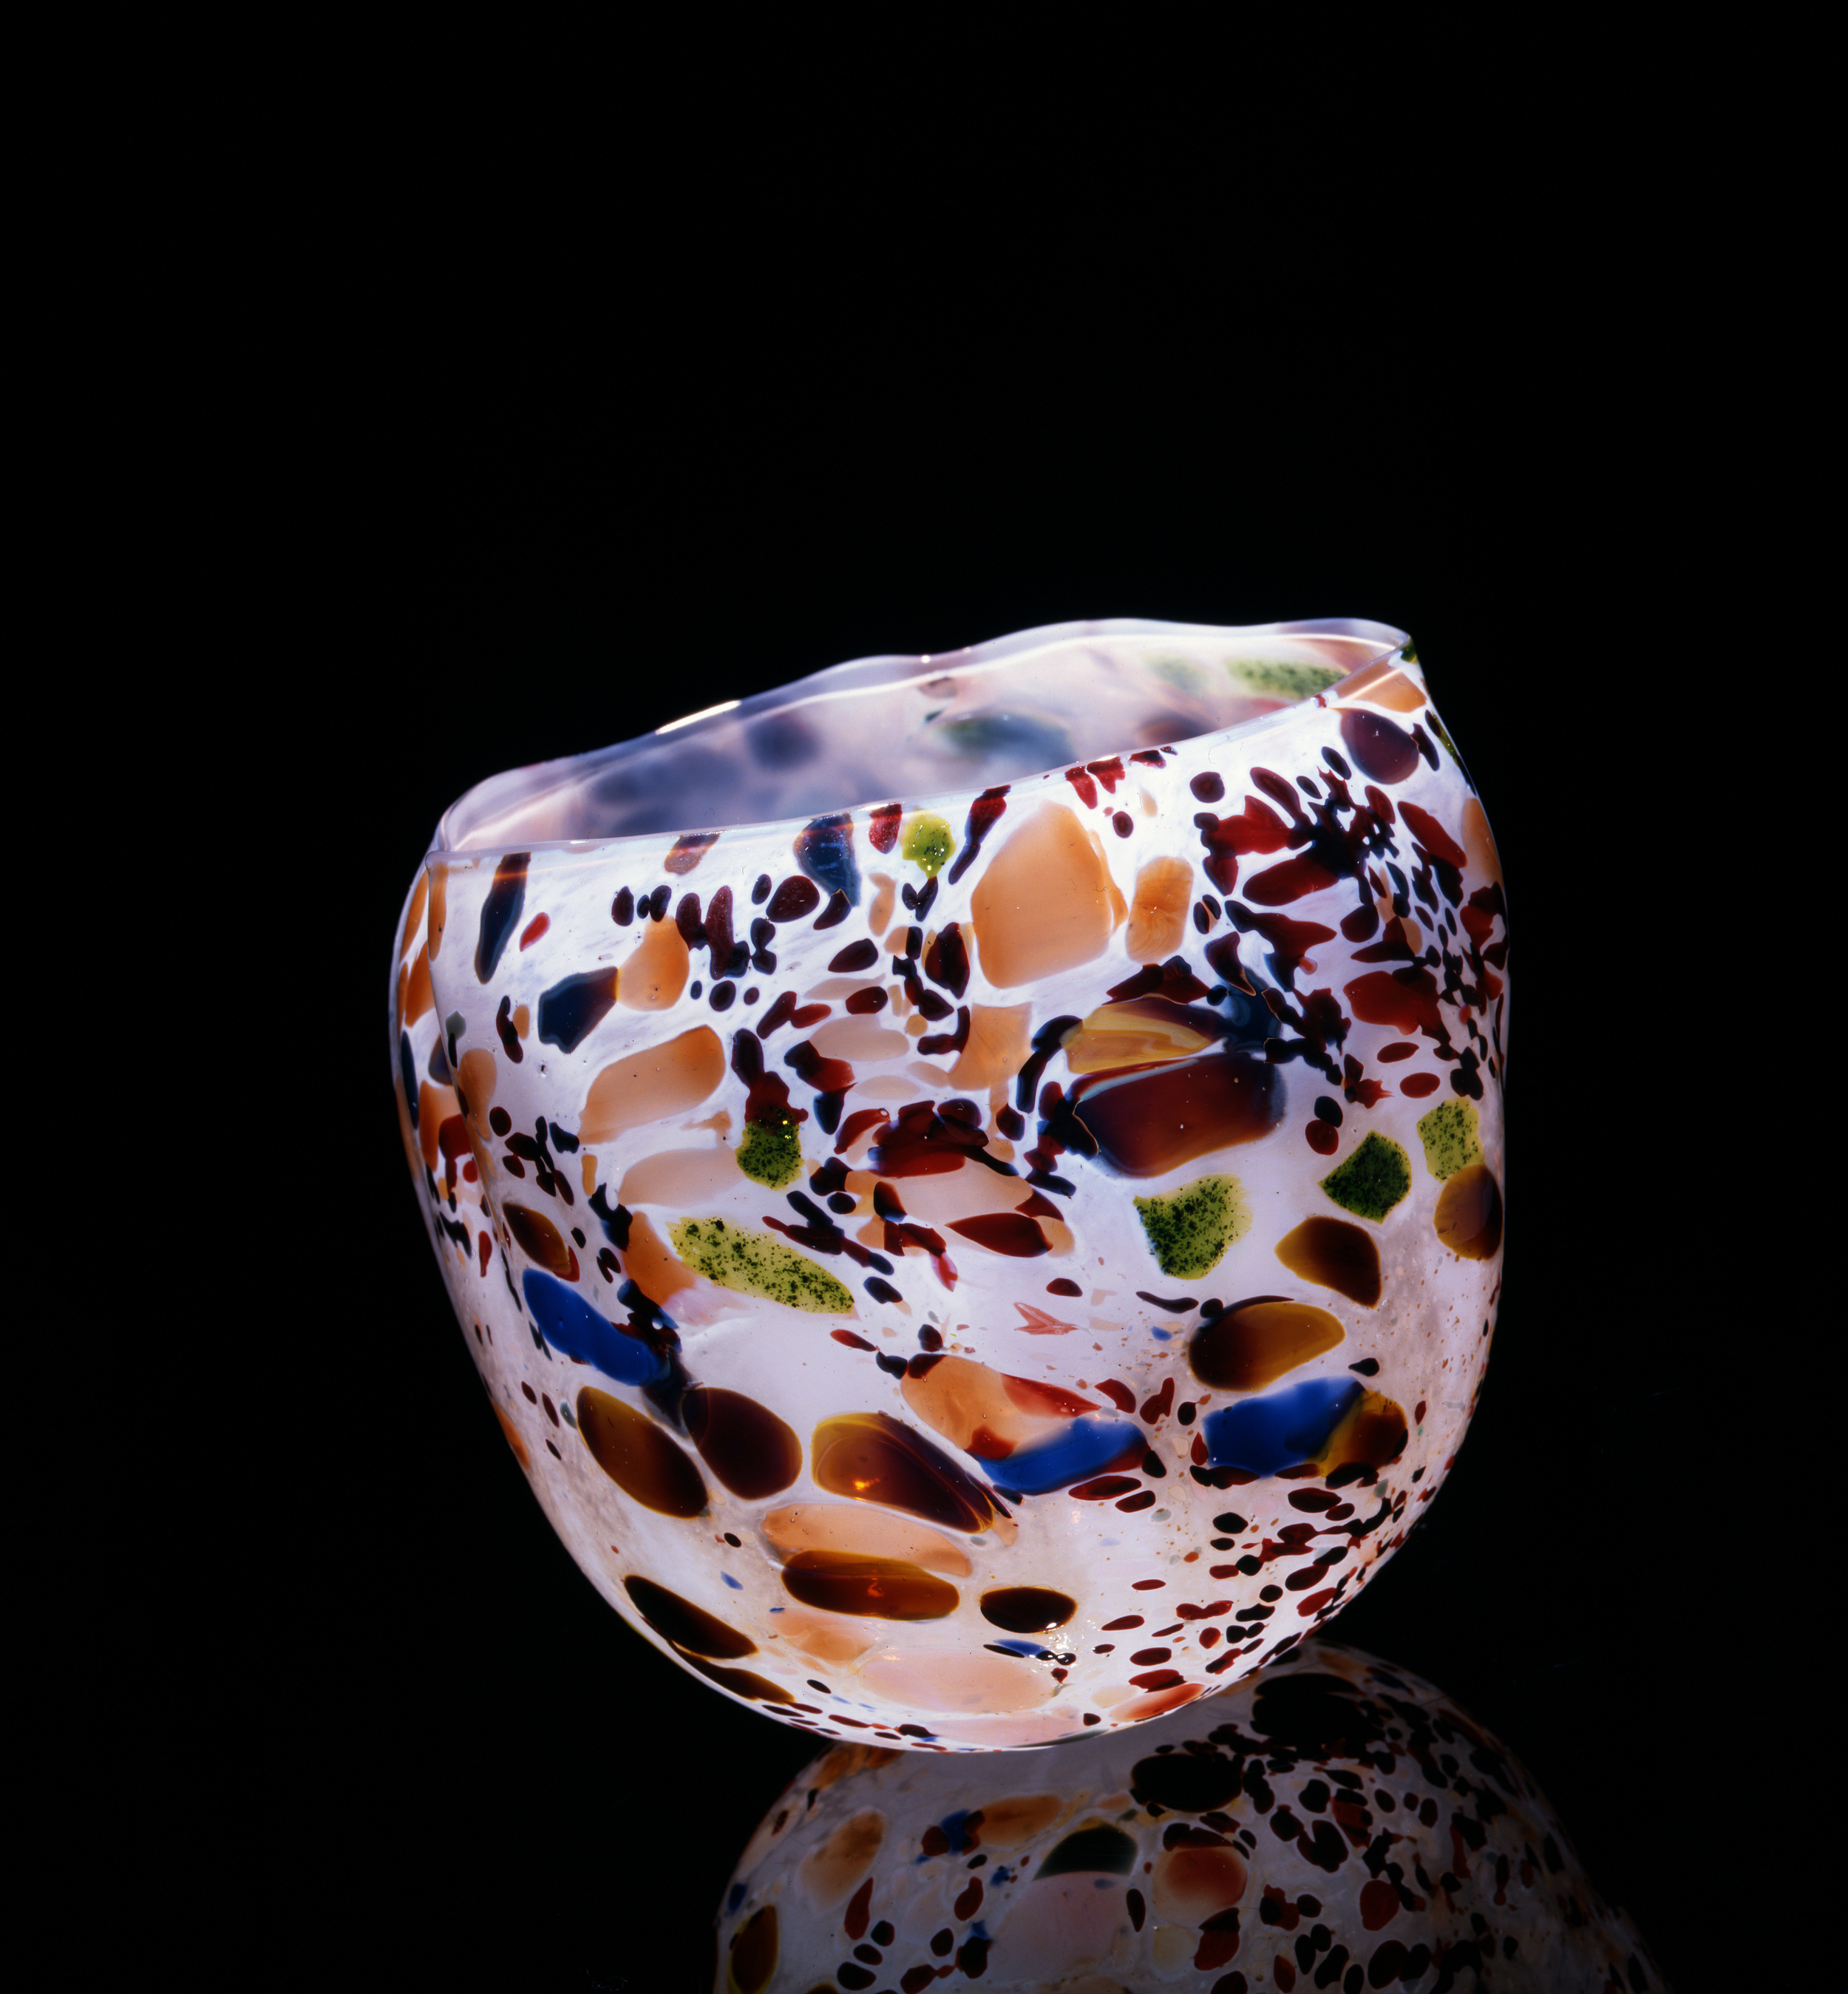 Dale Chihuly, Alabaster Macchia with Mutlicolored Jimmies  (1981, glass, 6 x 5 x5 inches), DC.60